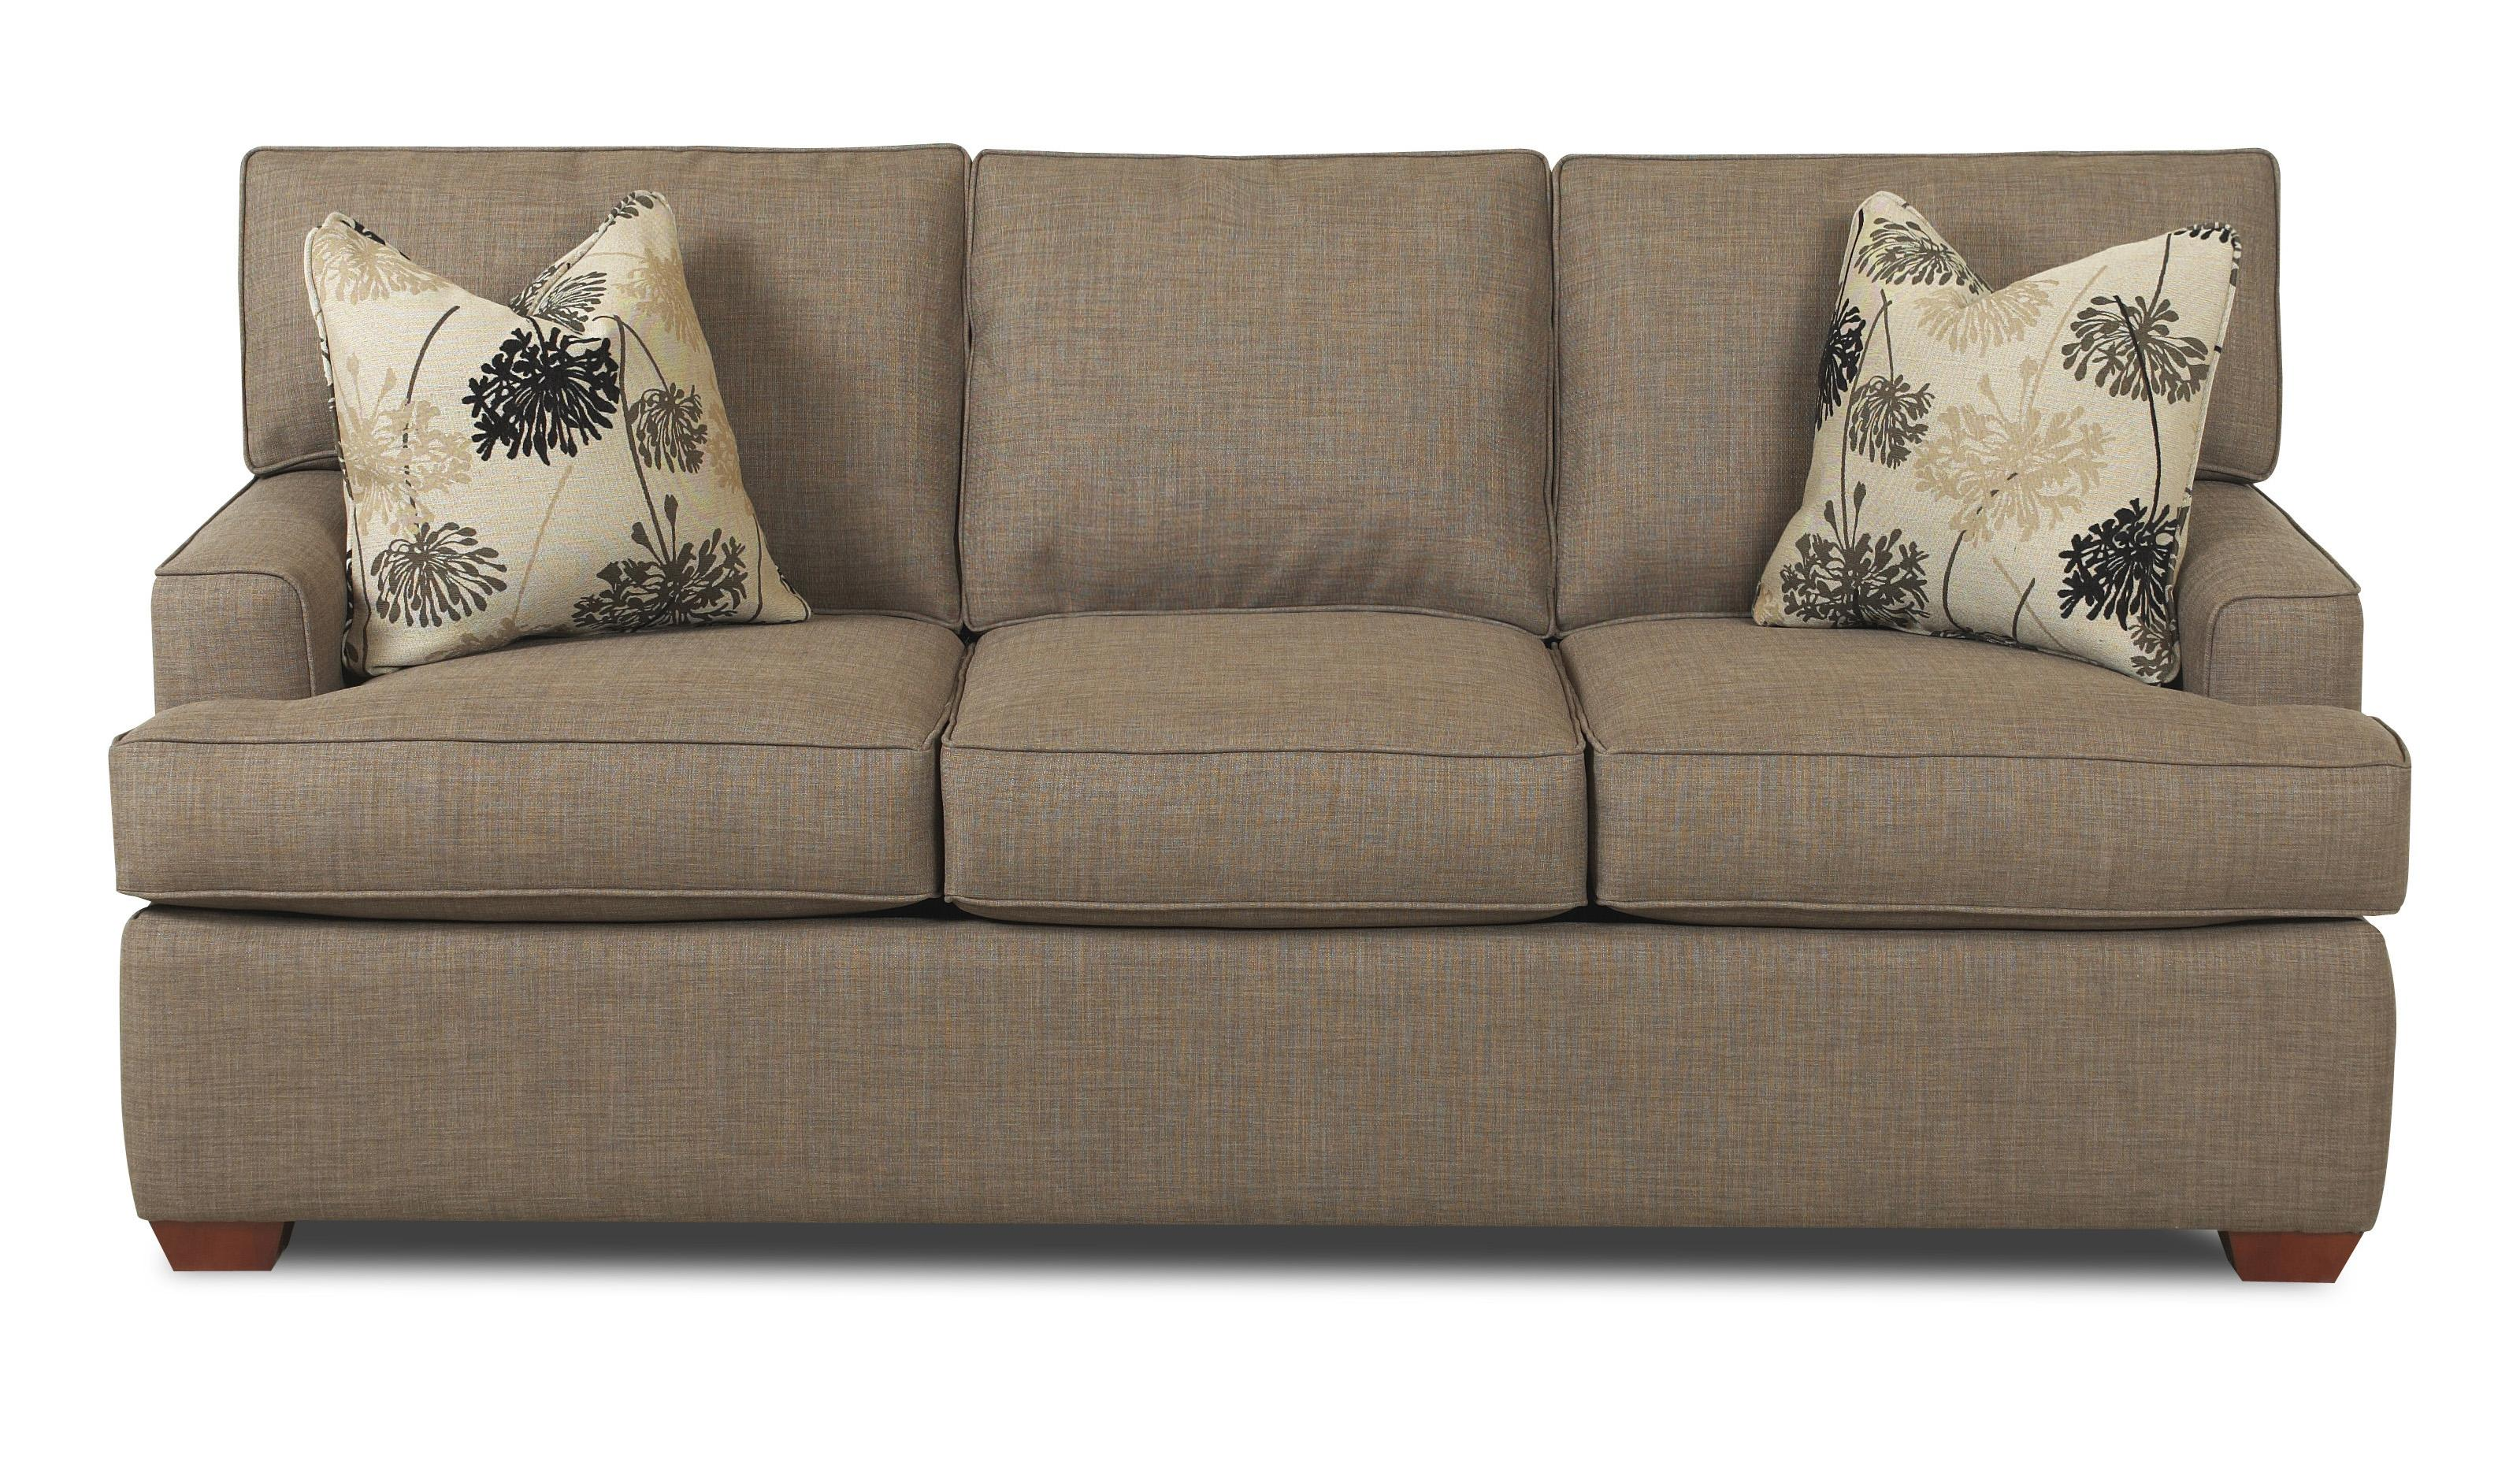 Pantego Air Dream Sleeper Sofa by Klaussner at Northeast Factory Direct